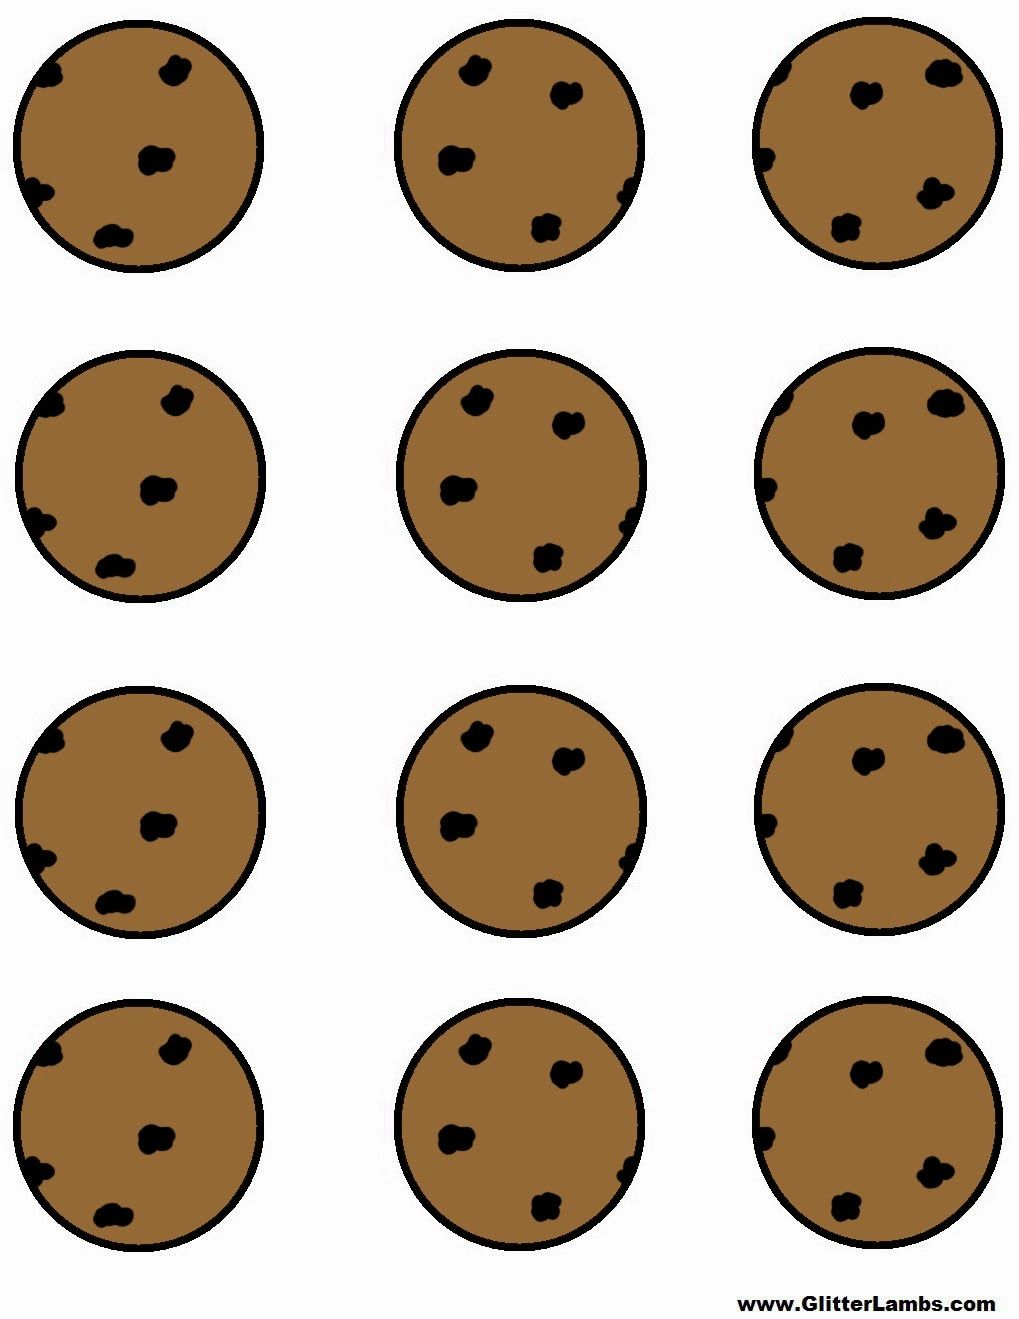 Glitter lambs cookie monster. Chips clipart template